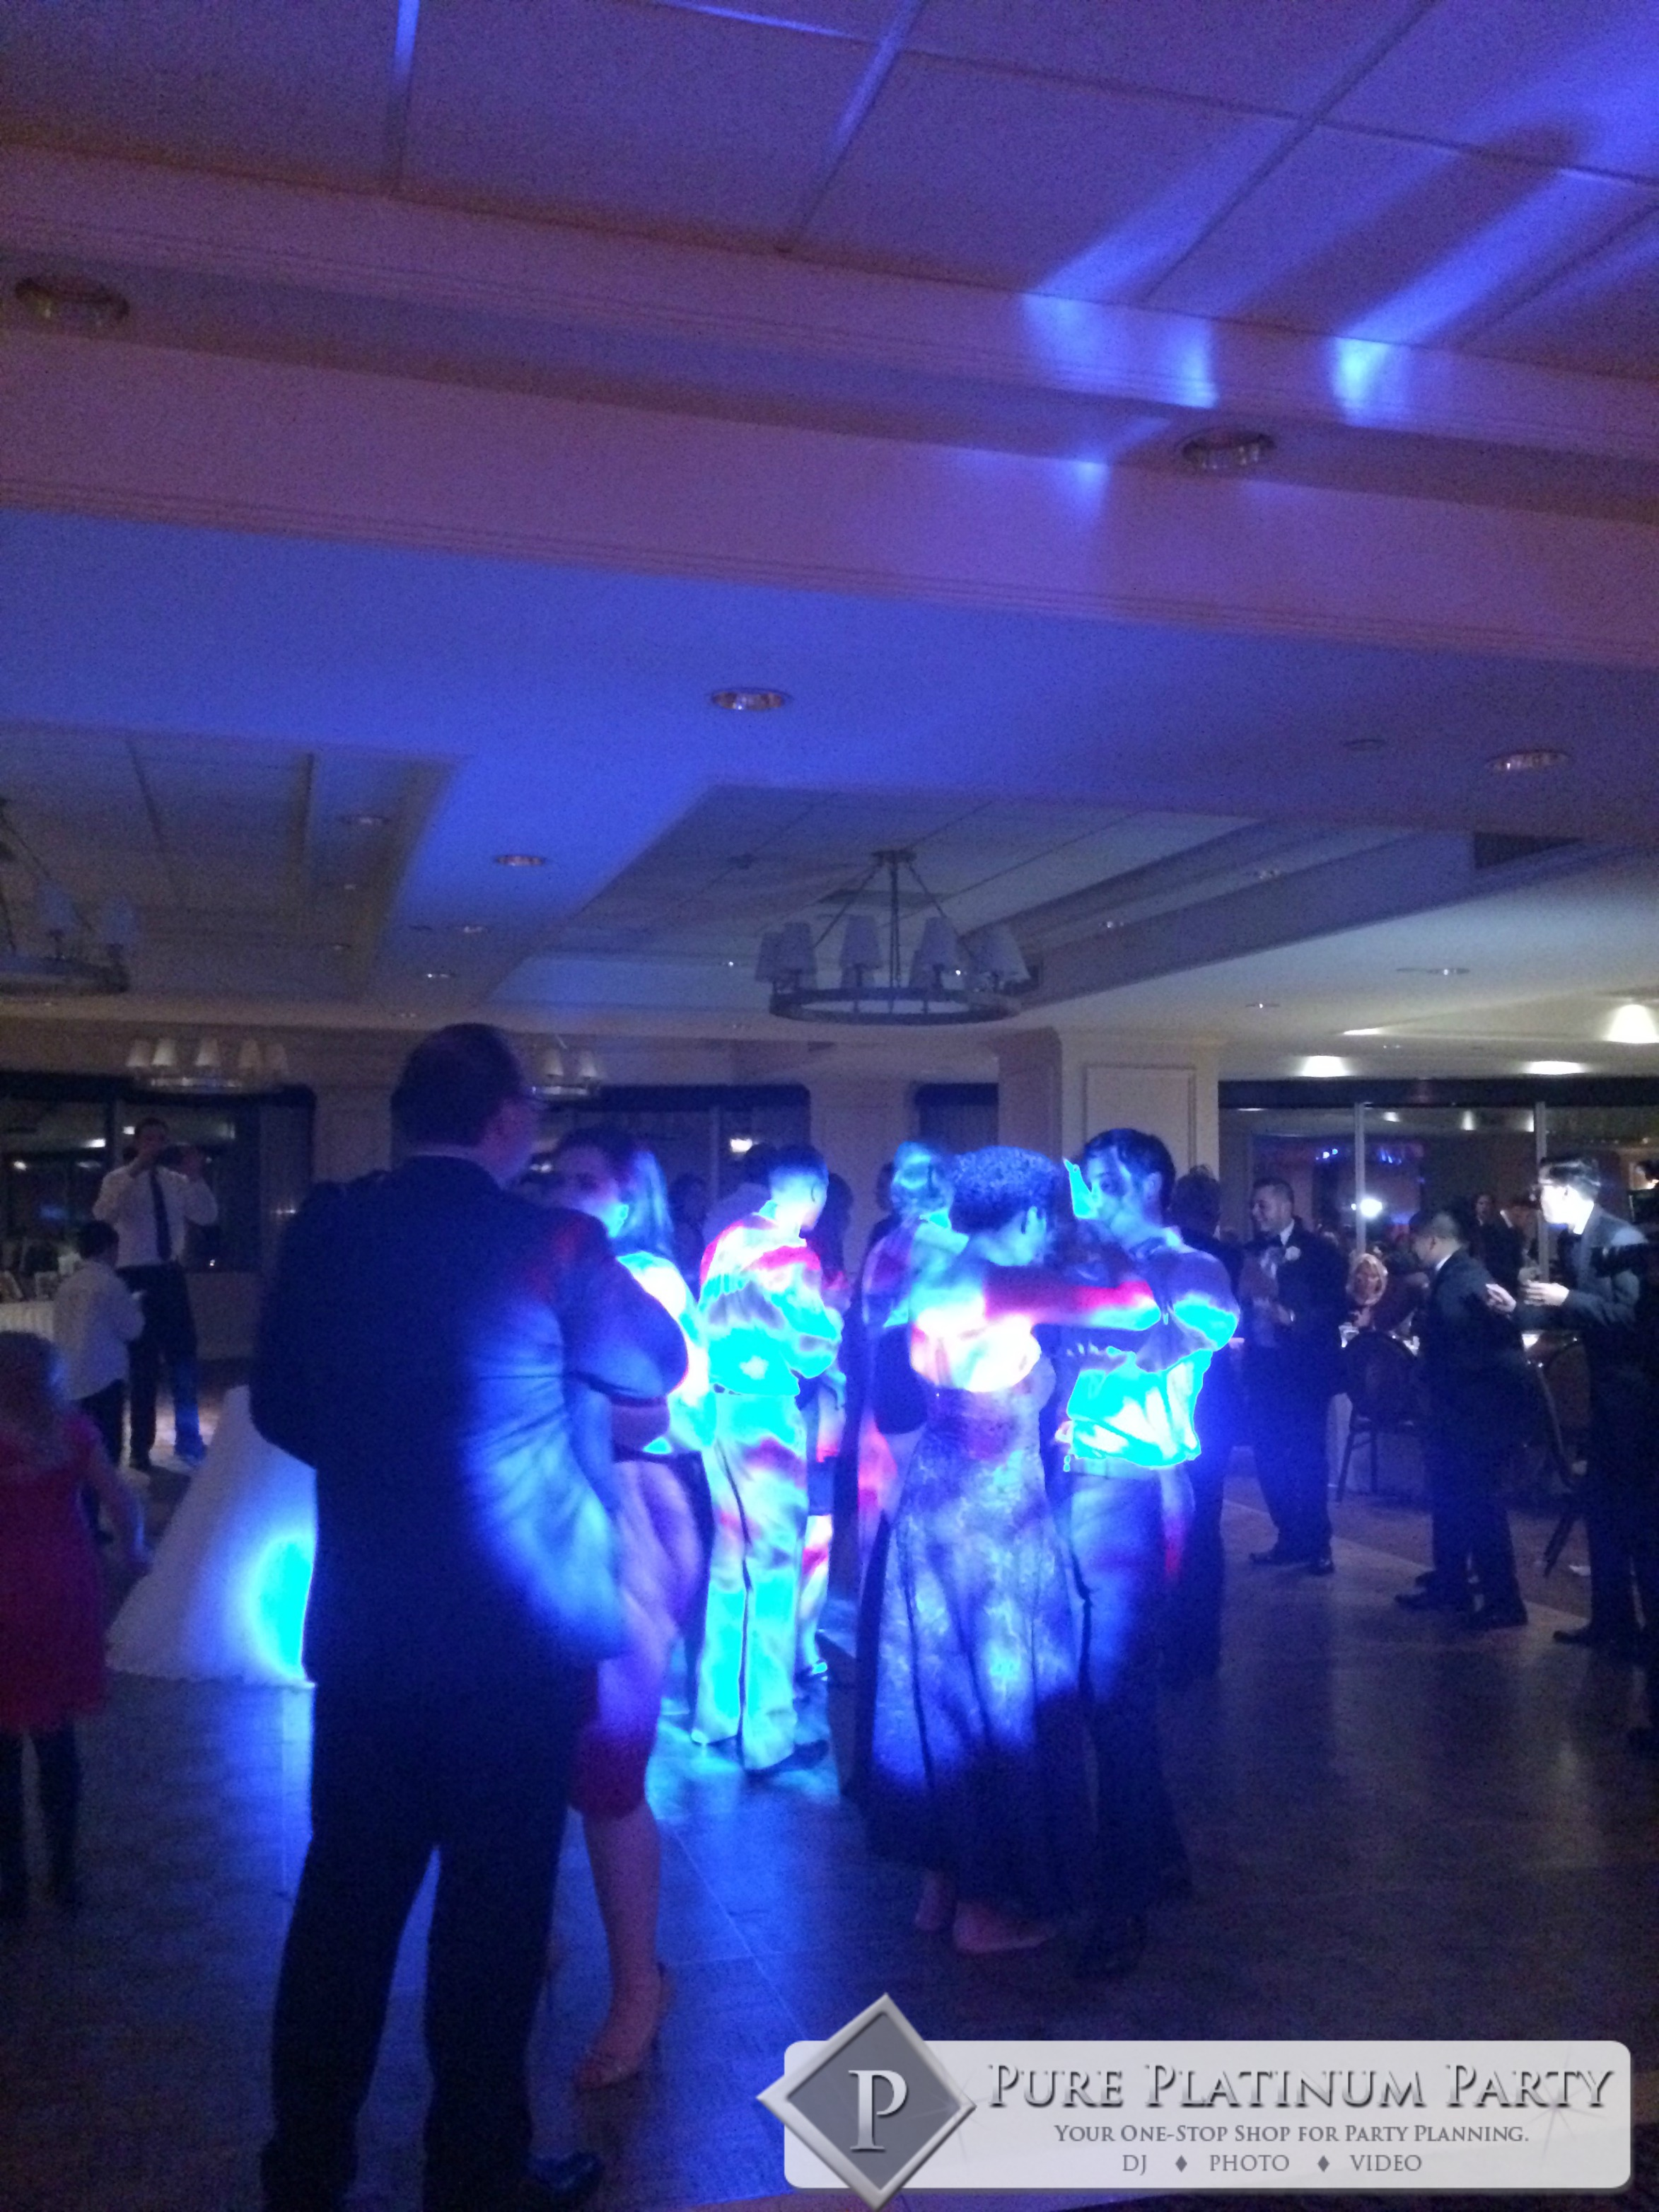 NJ Couple Does Not Want The Night to End as DJ Packs the Dance Floor With Loving Guests -Sheraton Mahwah Hotel in Mahwah, NJ